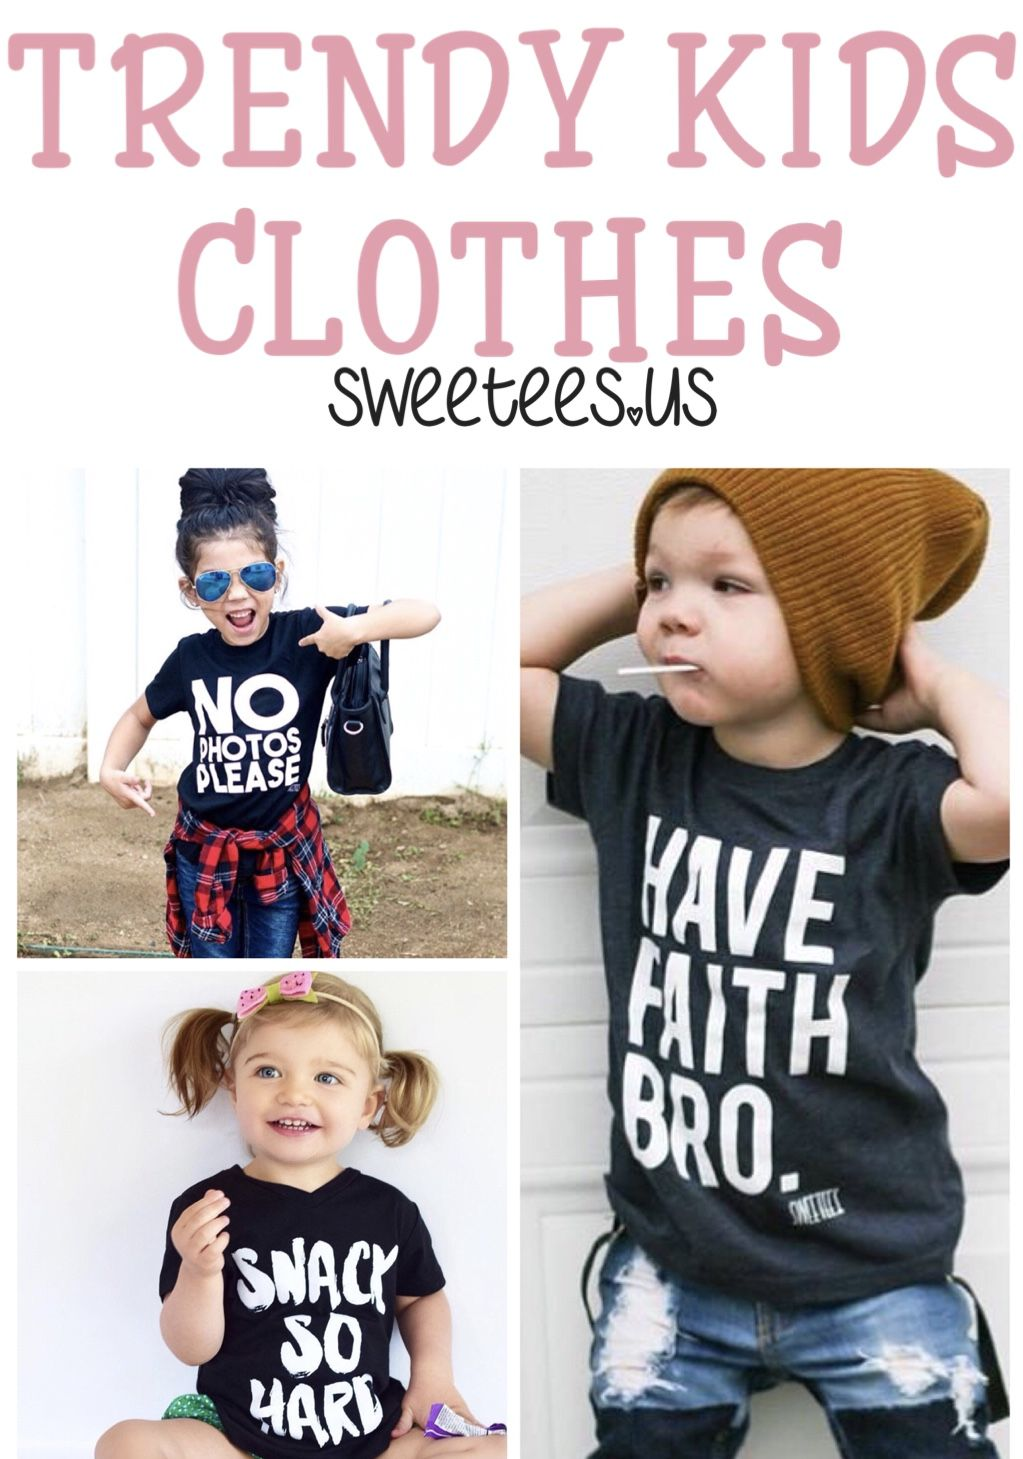 Kids Clothes: Shop Girls, Boys, Toddlers, Baby Clothes and